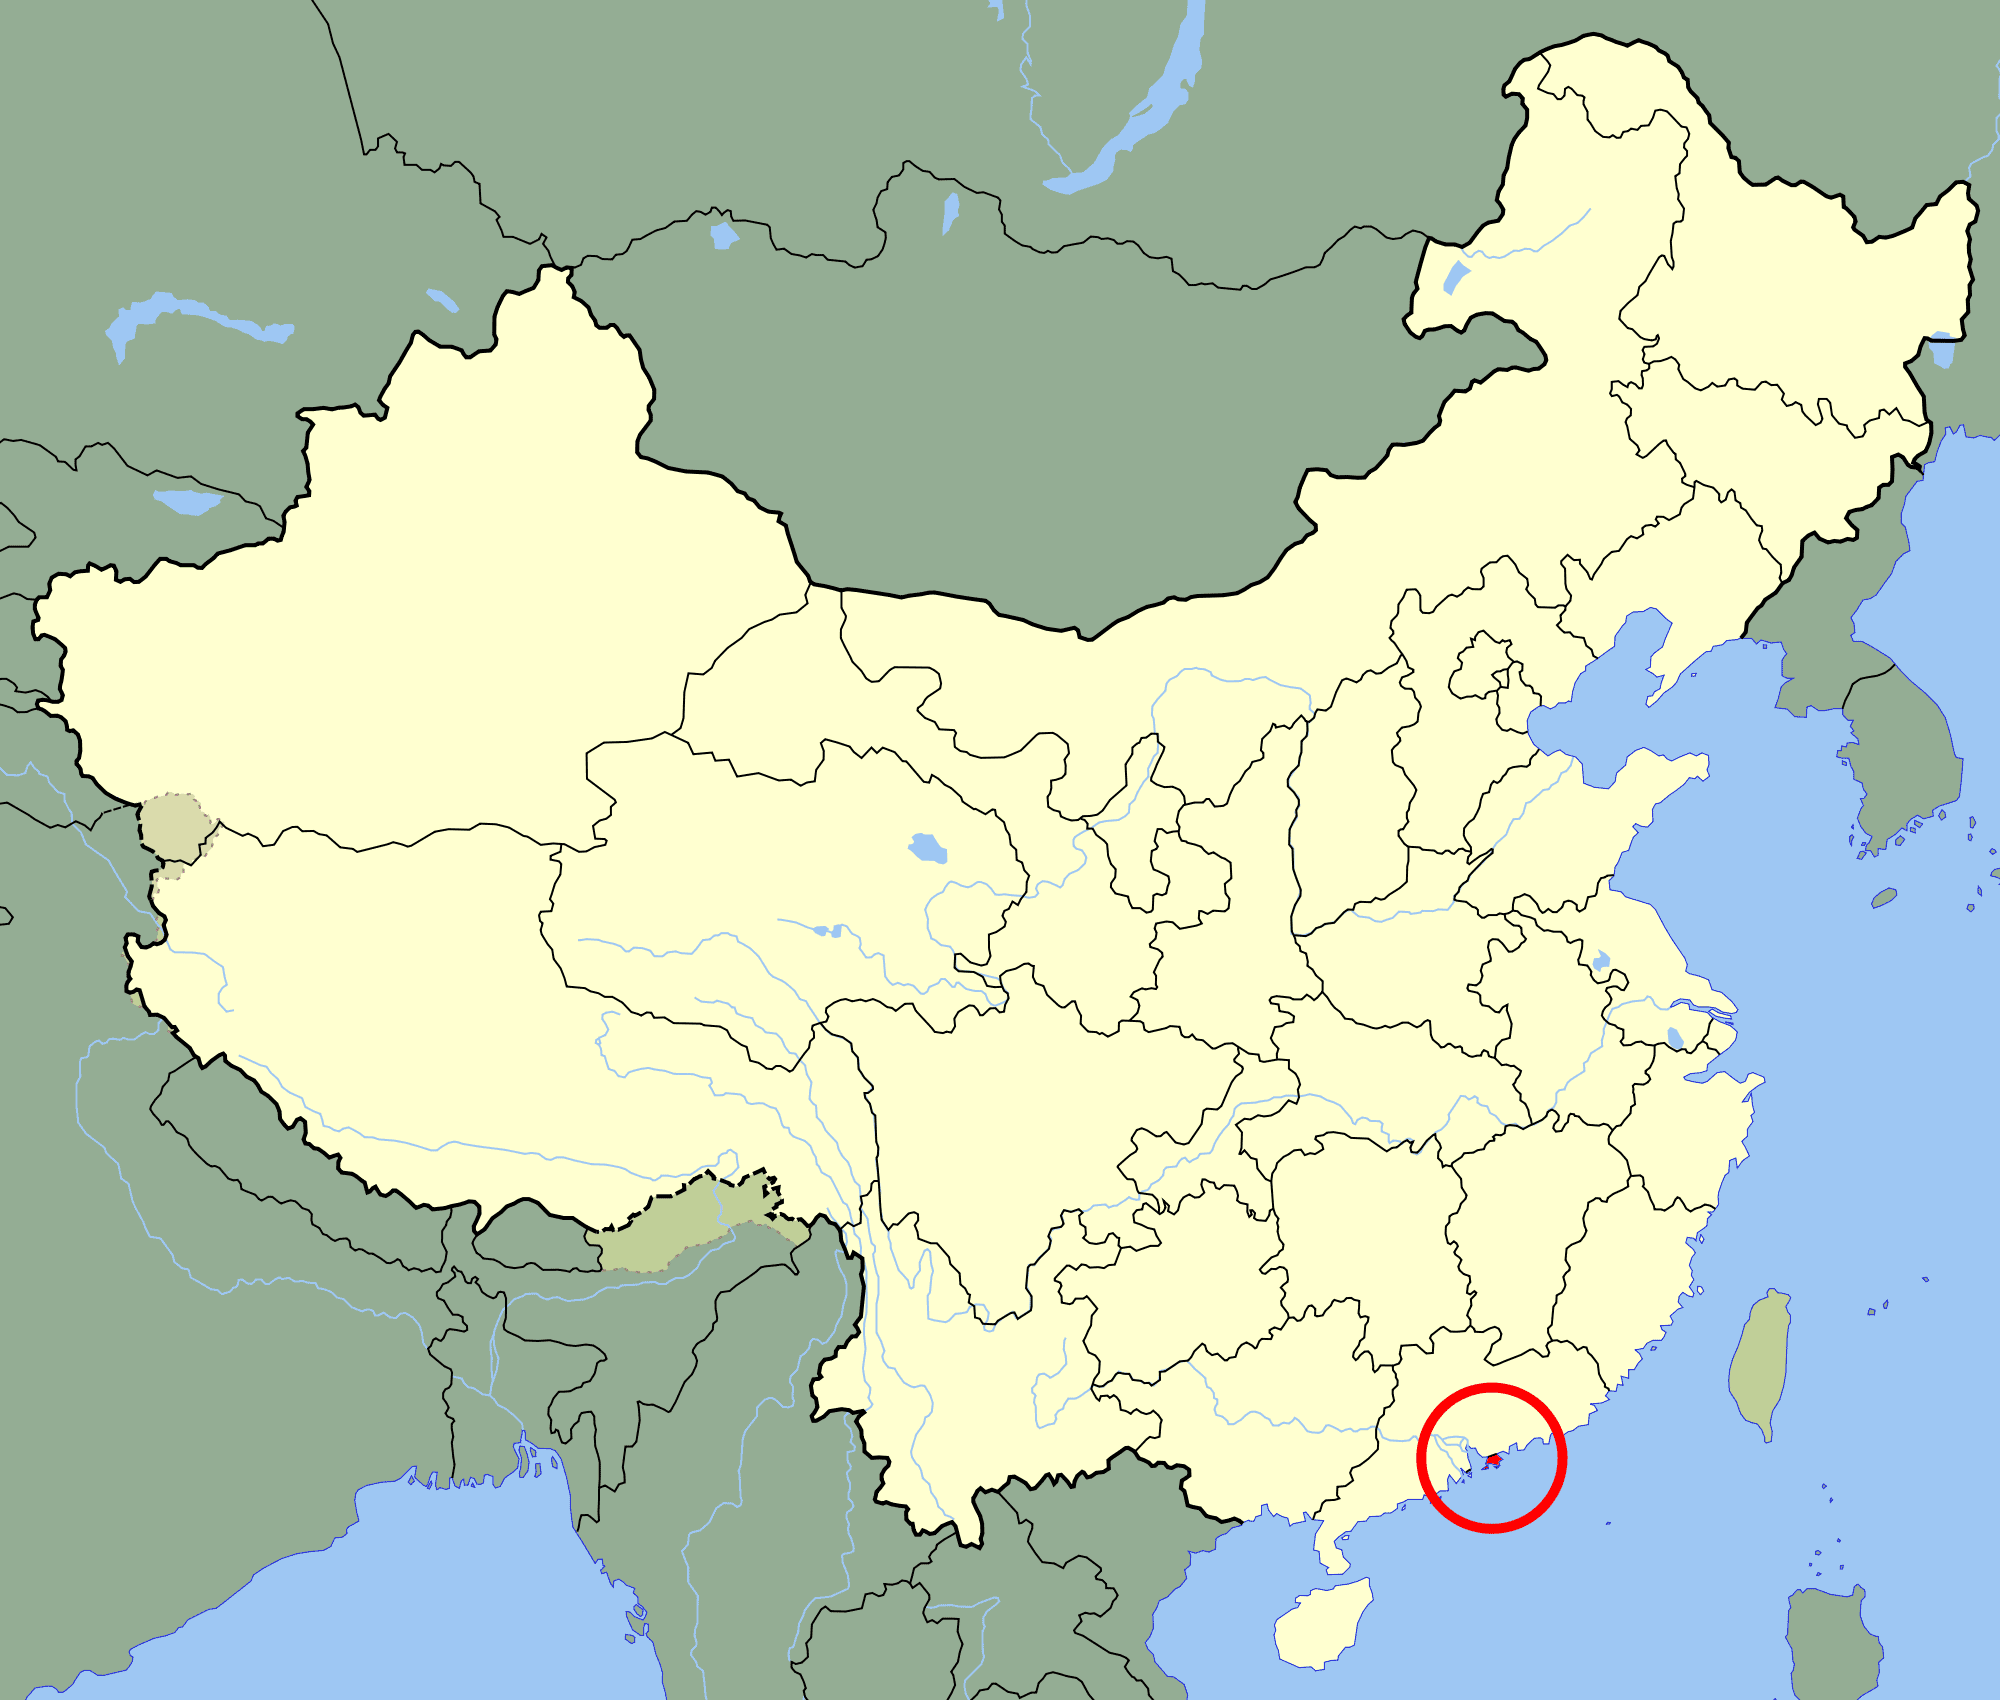 Map Of China And Hong Kong China Hong Kong Location Map • Mapsof.net